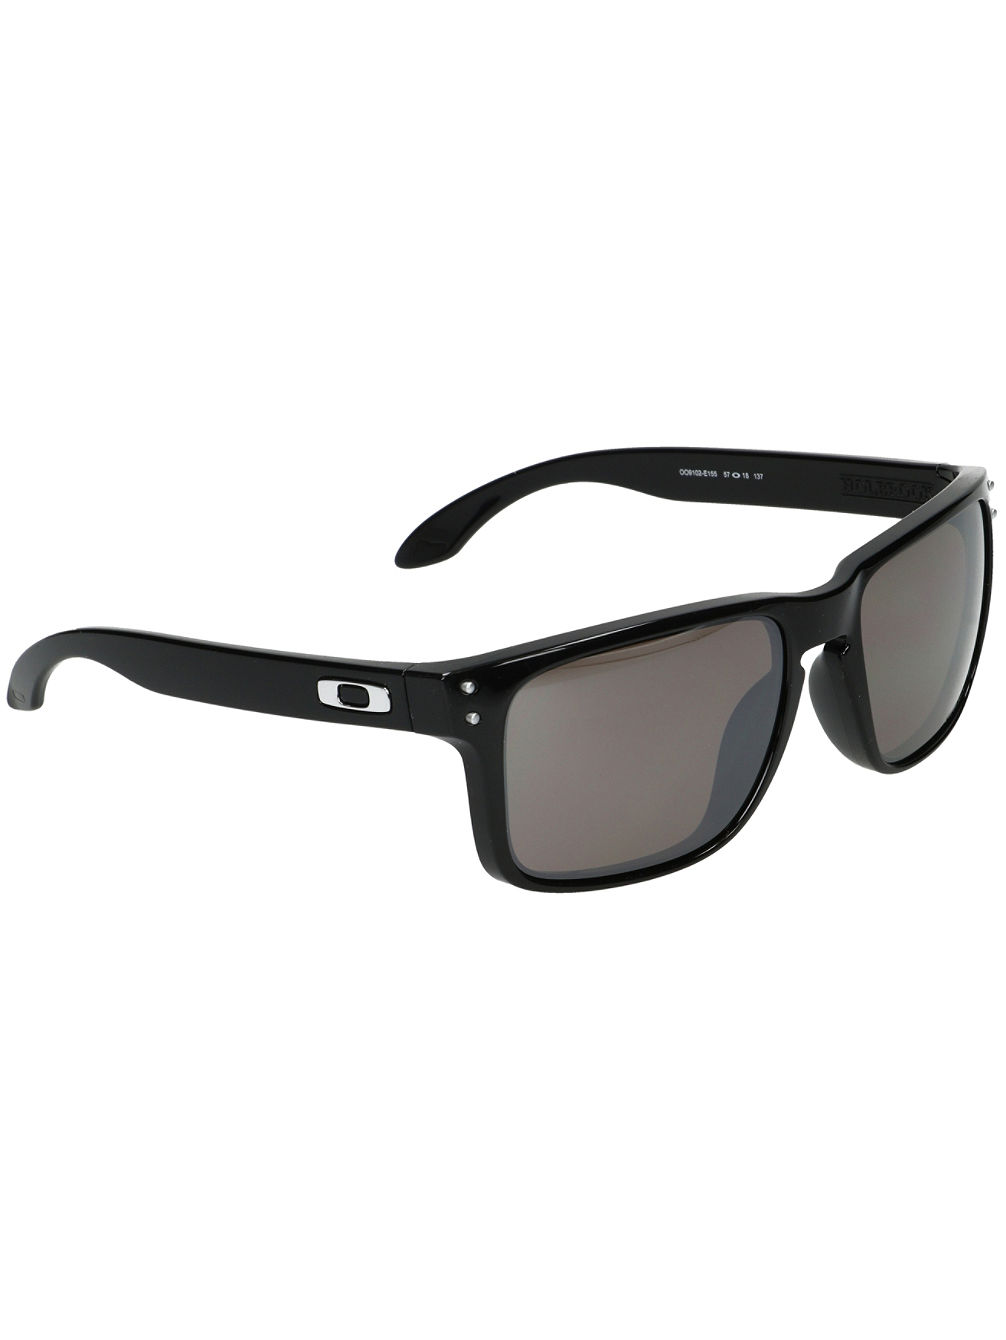 Holbrook Polished Black Sonnenbrille